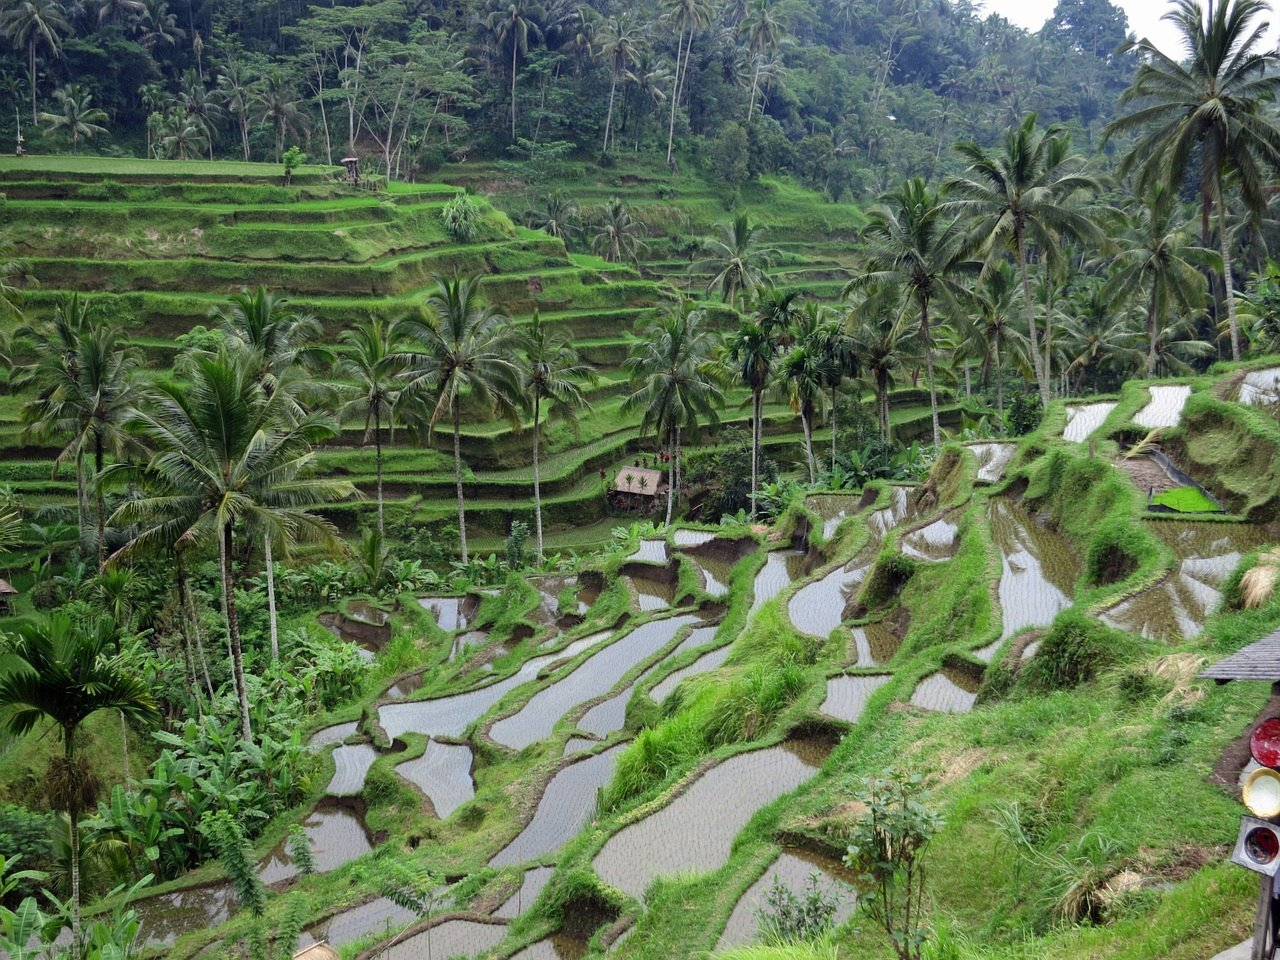 14-Day Bali Hills, Beach and Tradition - Indonesia Itinerary